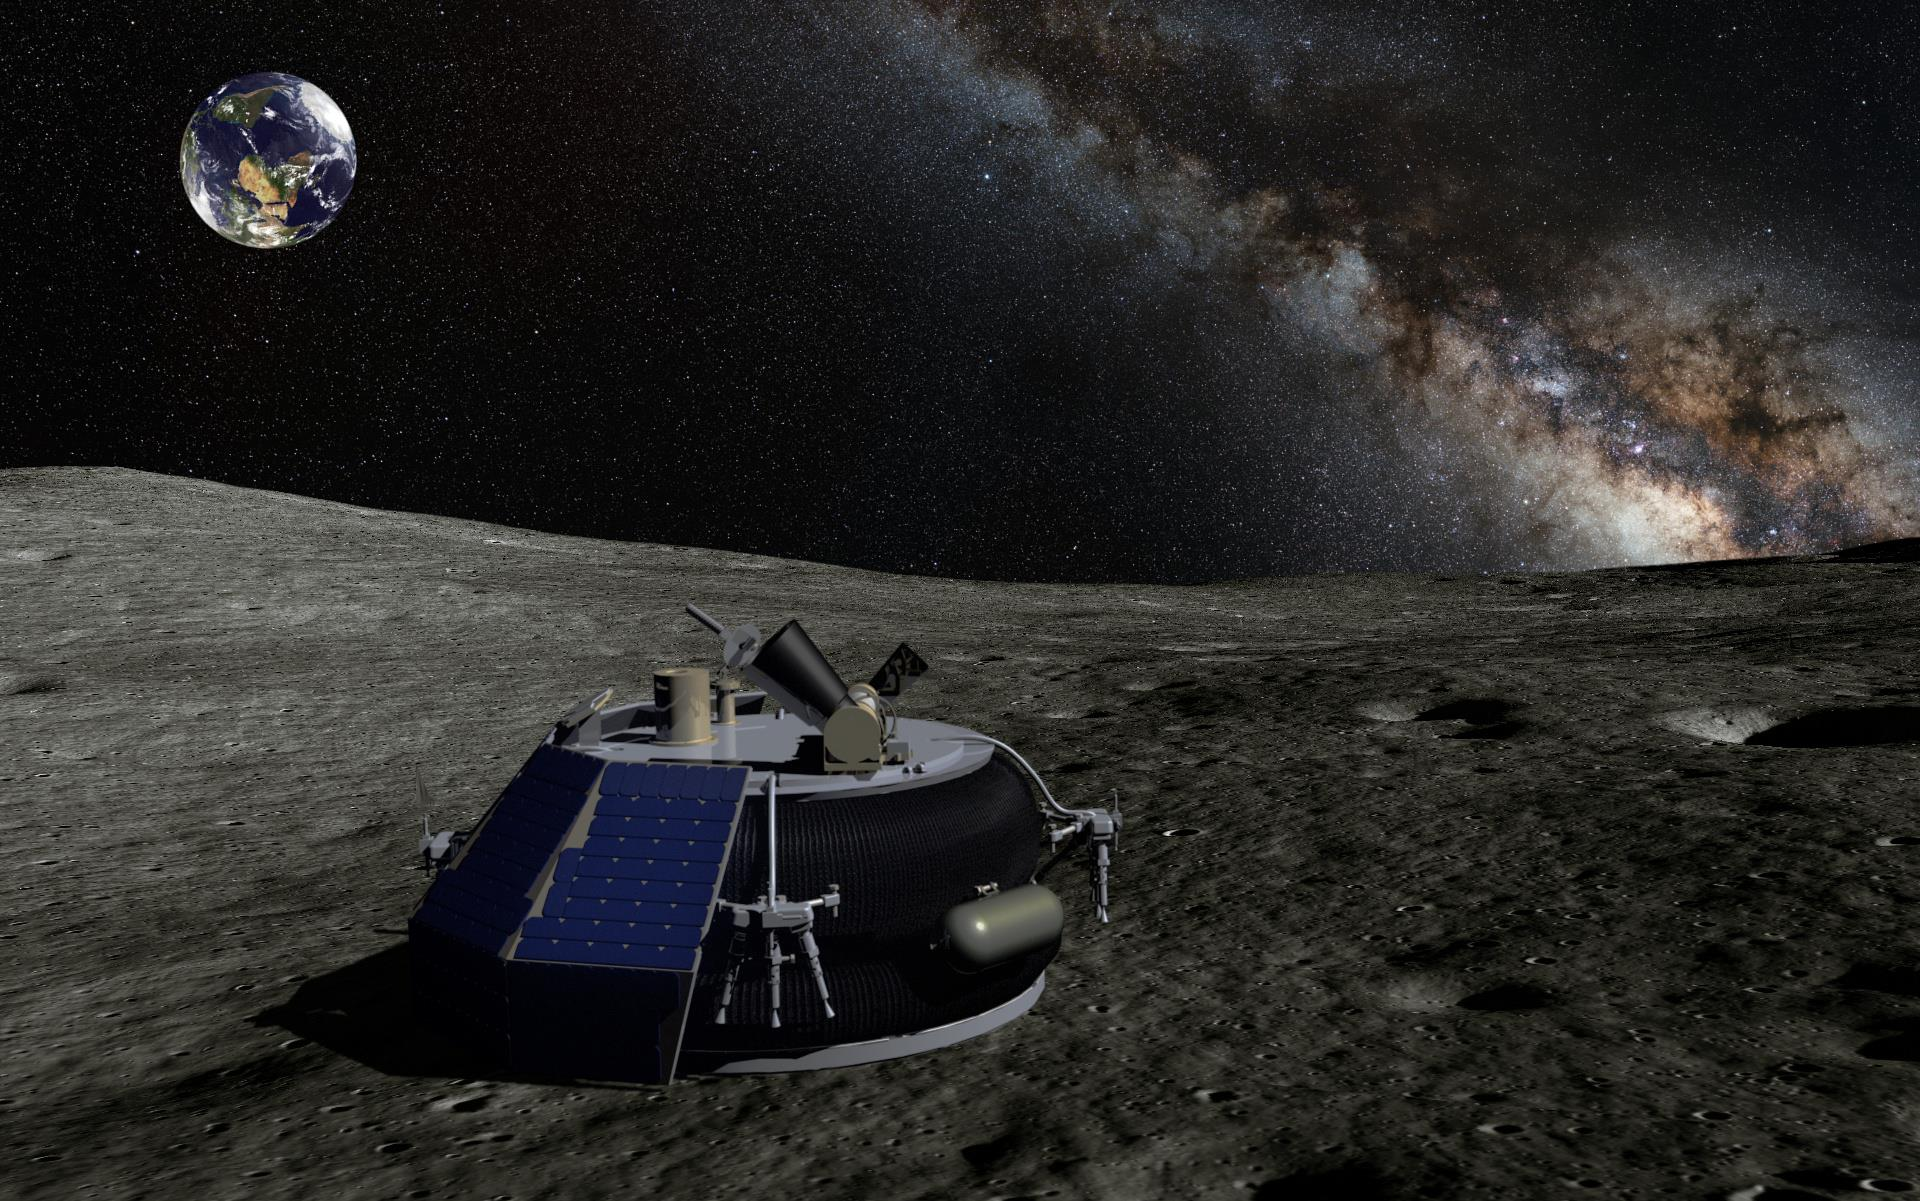 Courtesy of Moon Express, Google Lunar XPRIZE